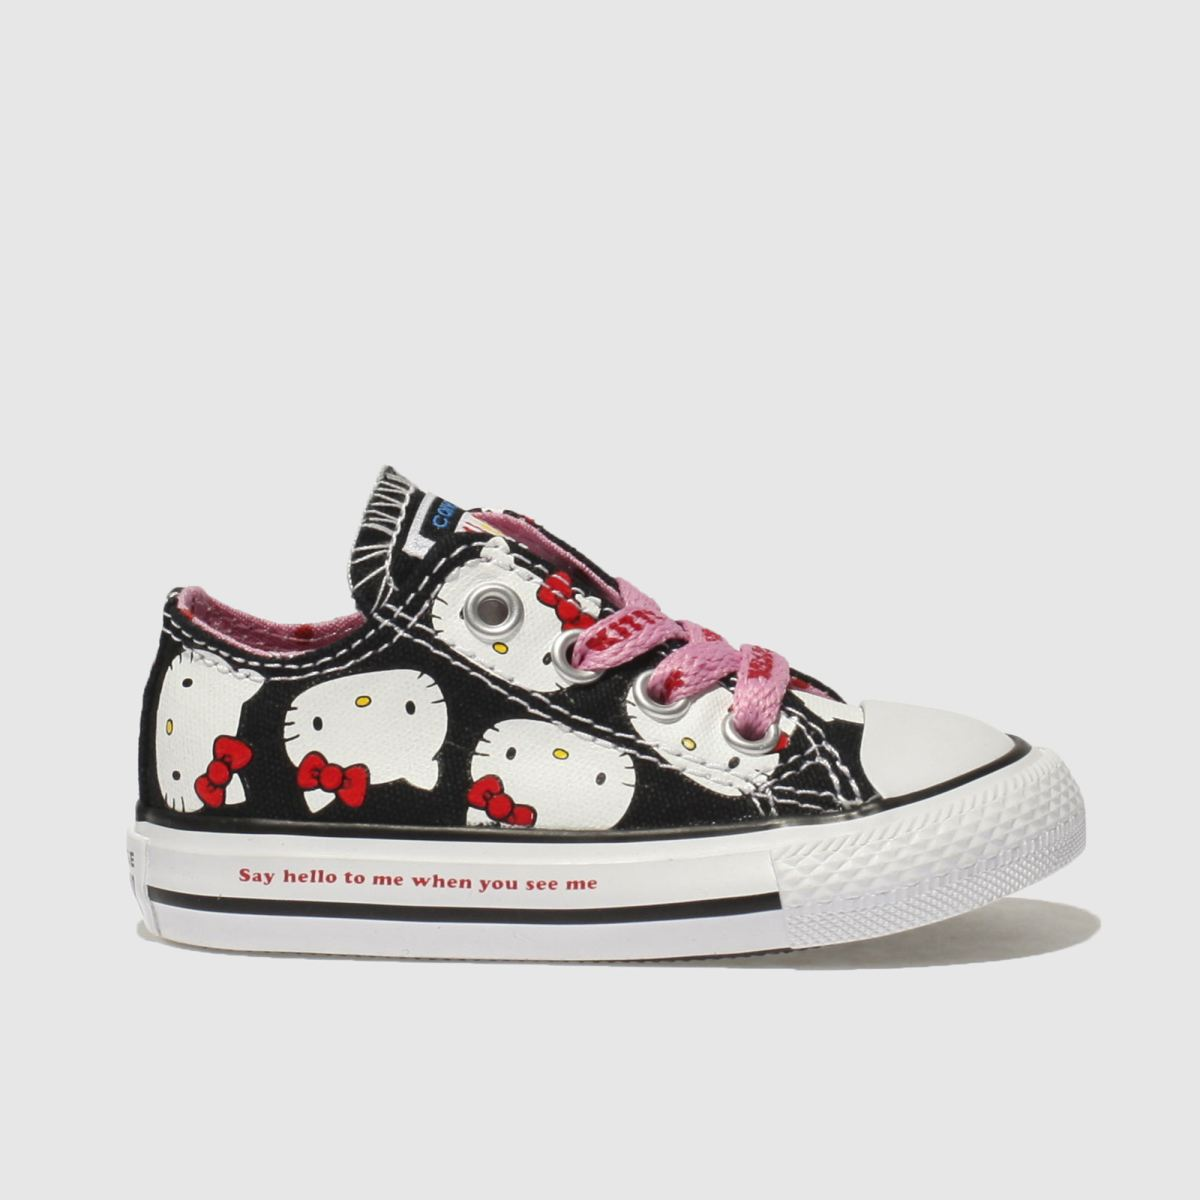 Converse Black & White All Star Hello Kitty Lo Girls Toddler Toddler